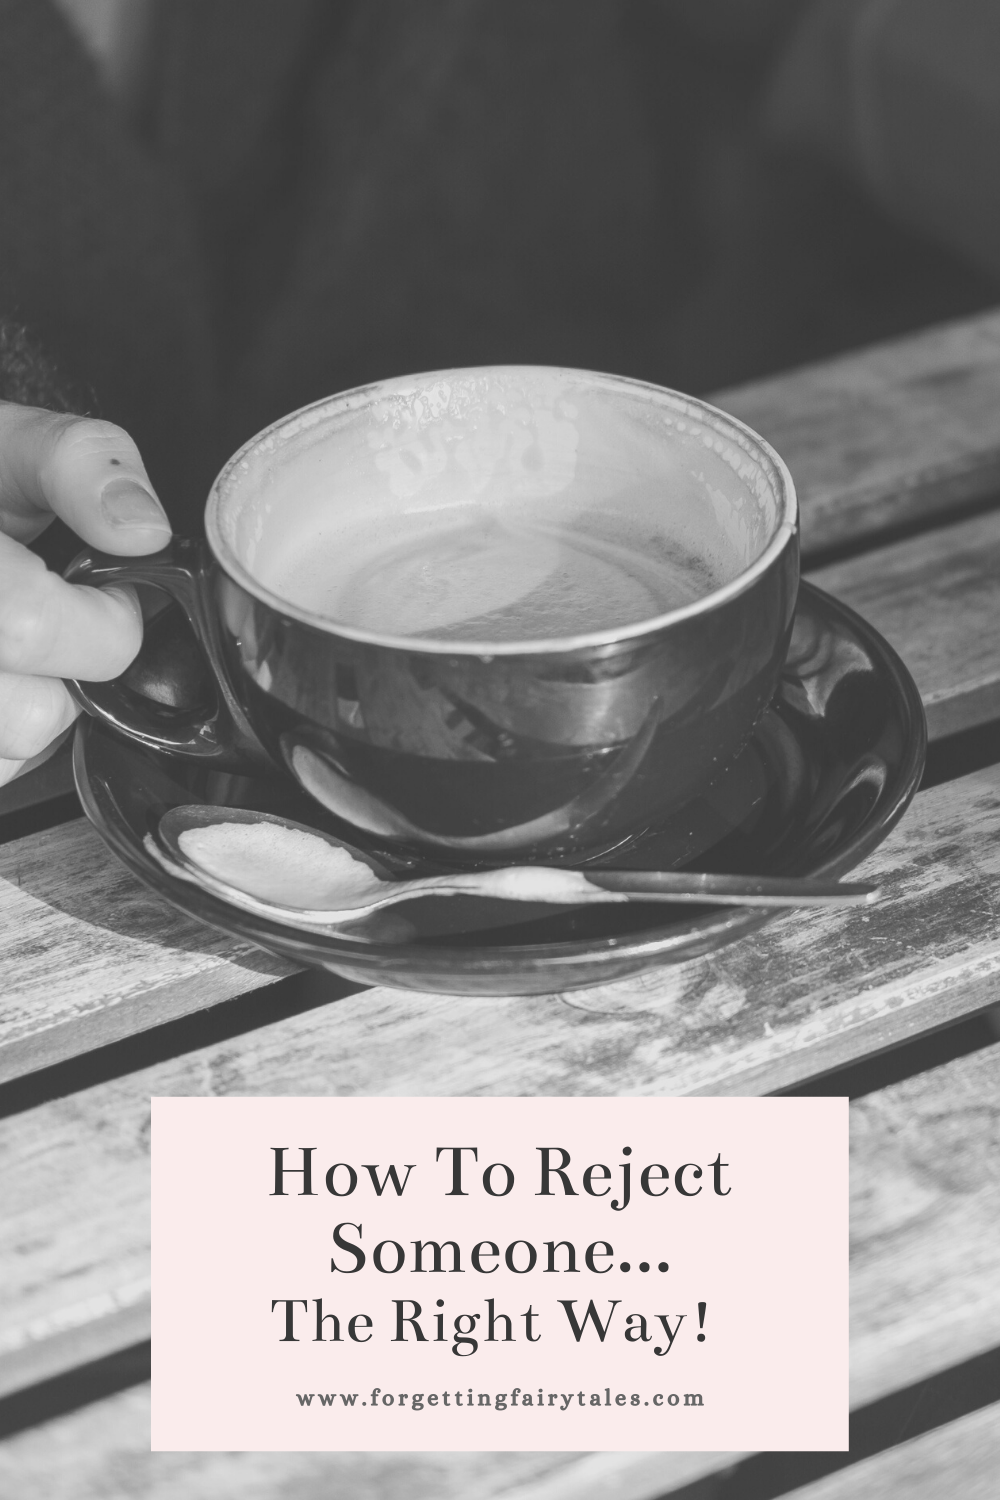 How To Reject Someone Nicely